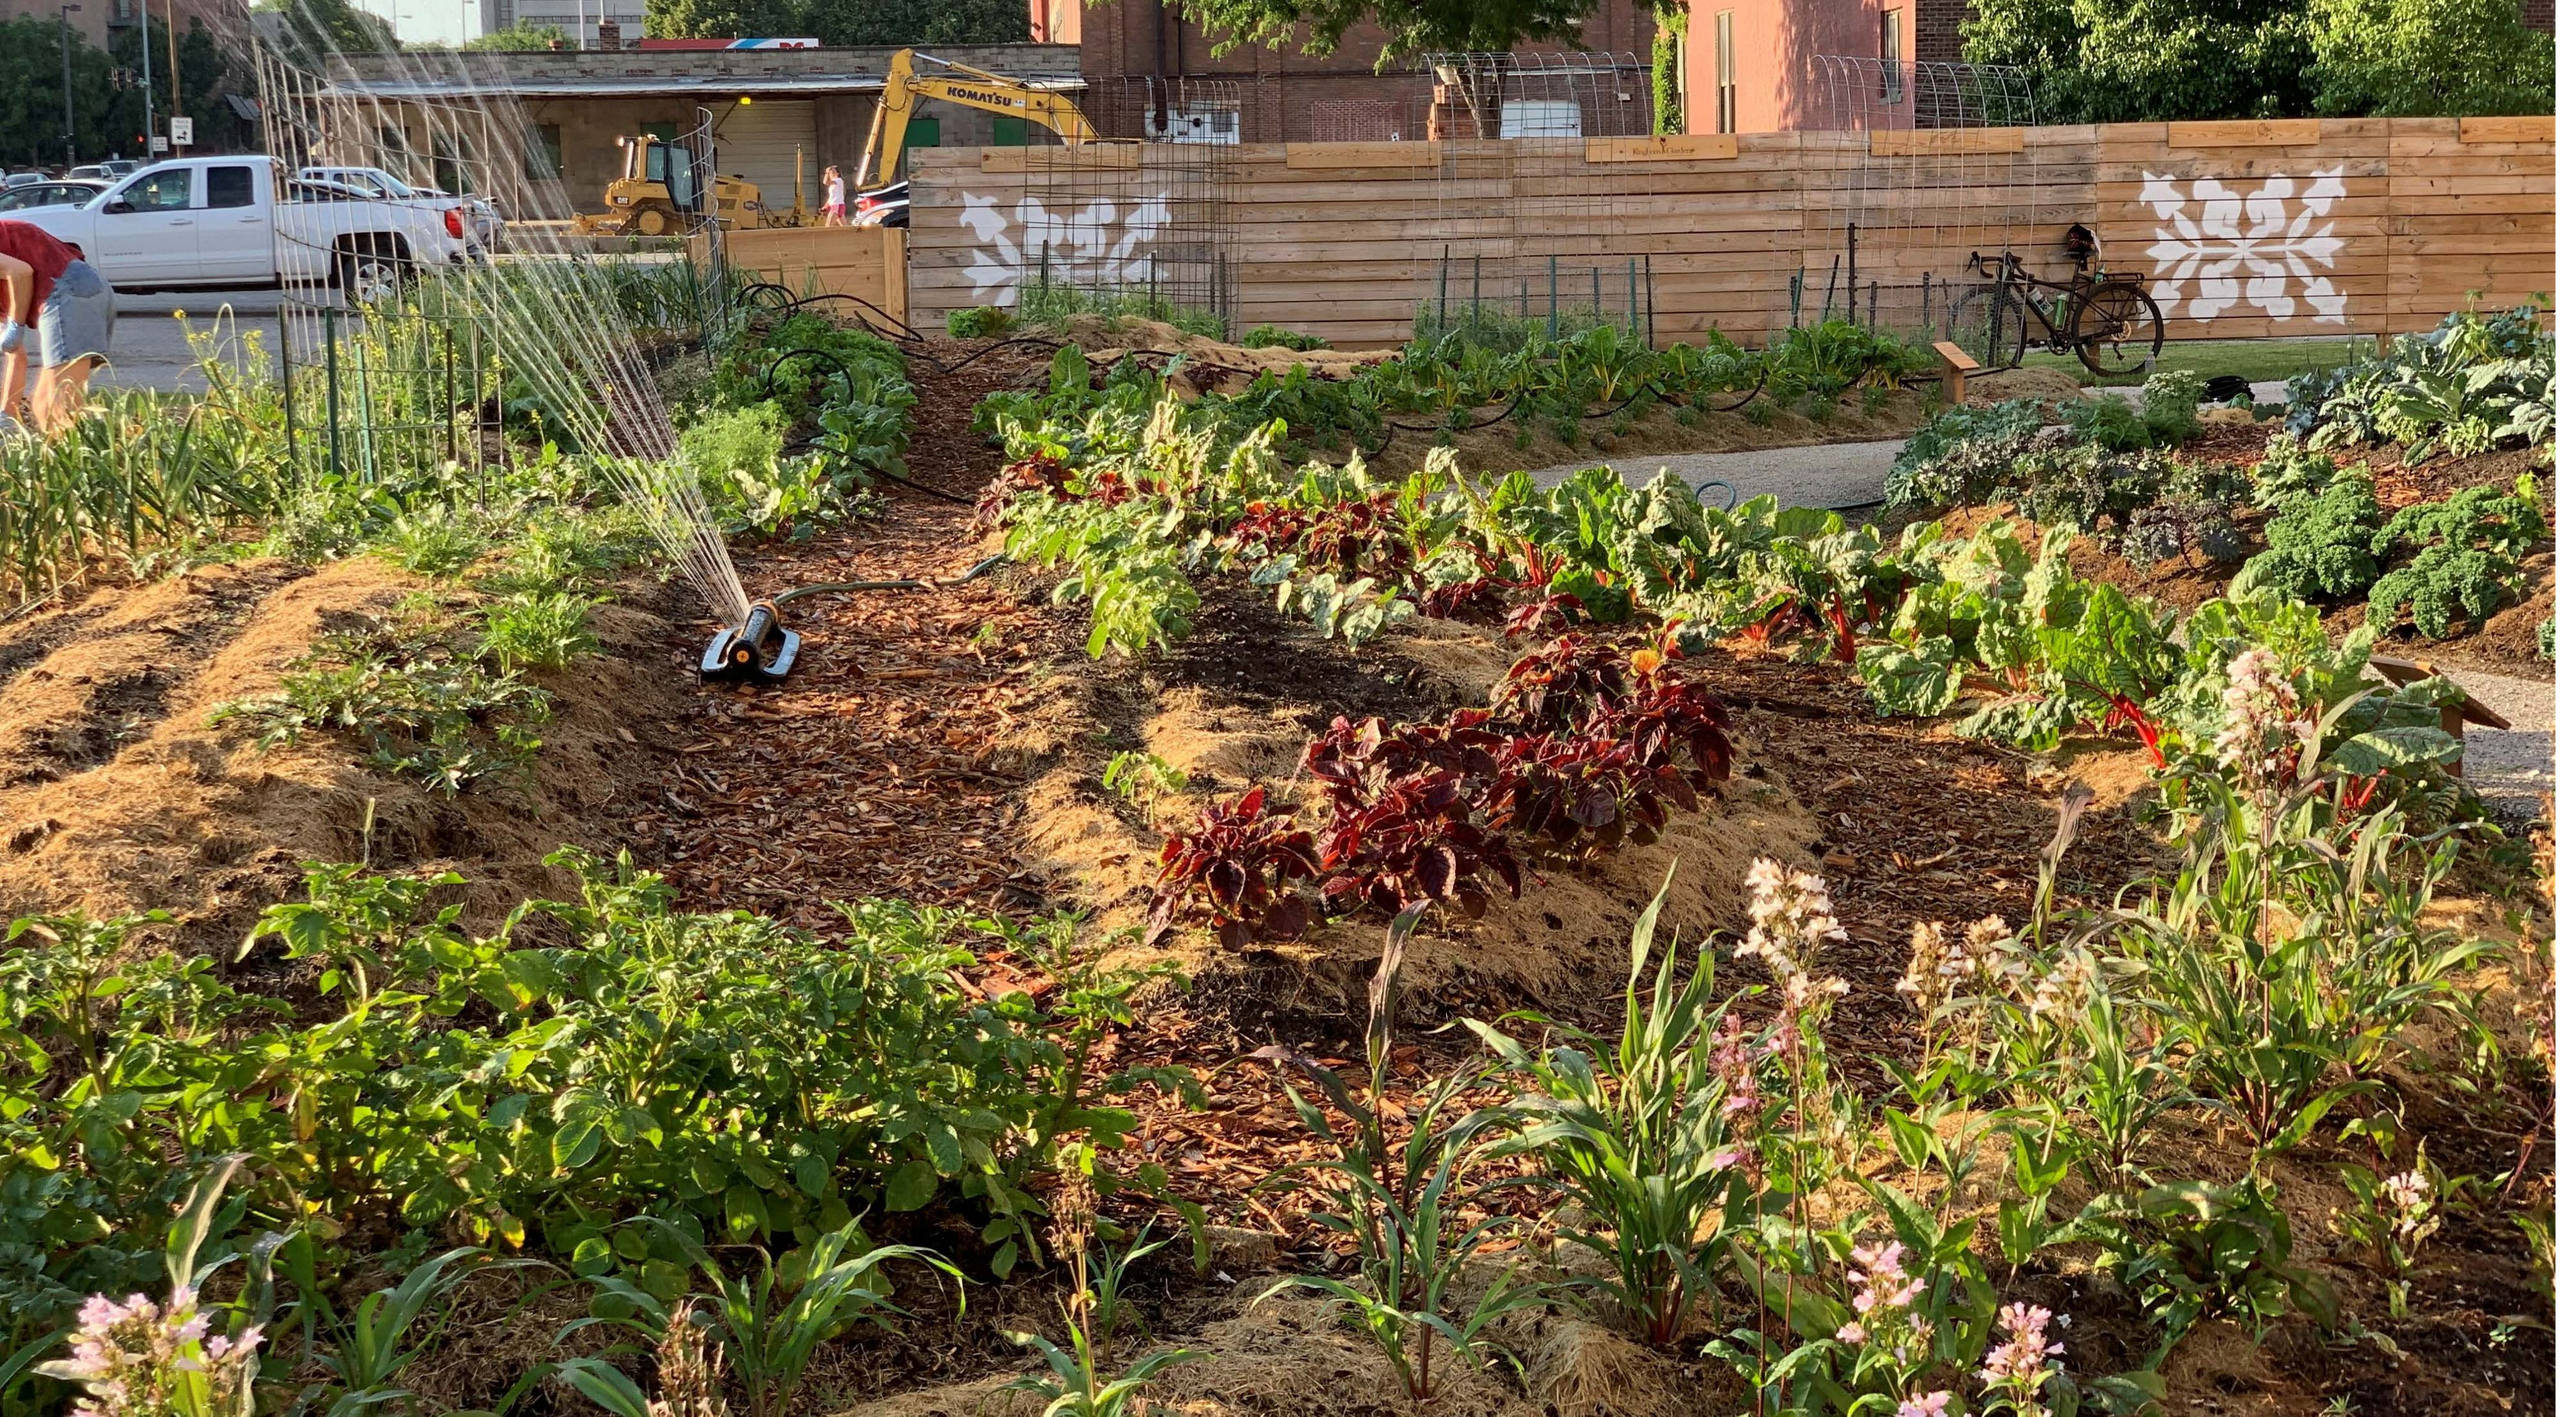 Raised plot containing vegetables, herbs, and flowers